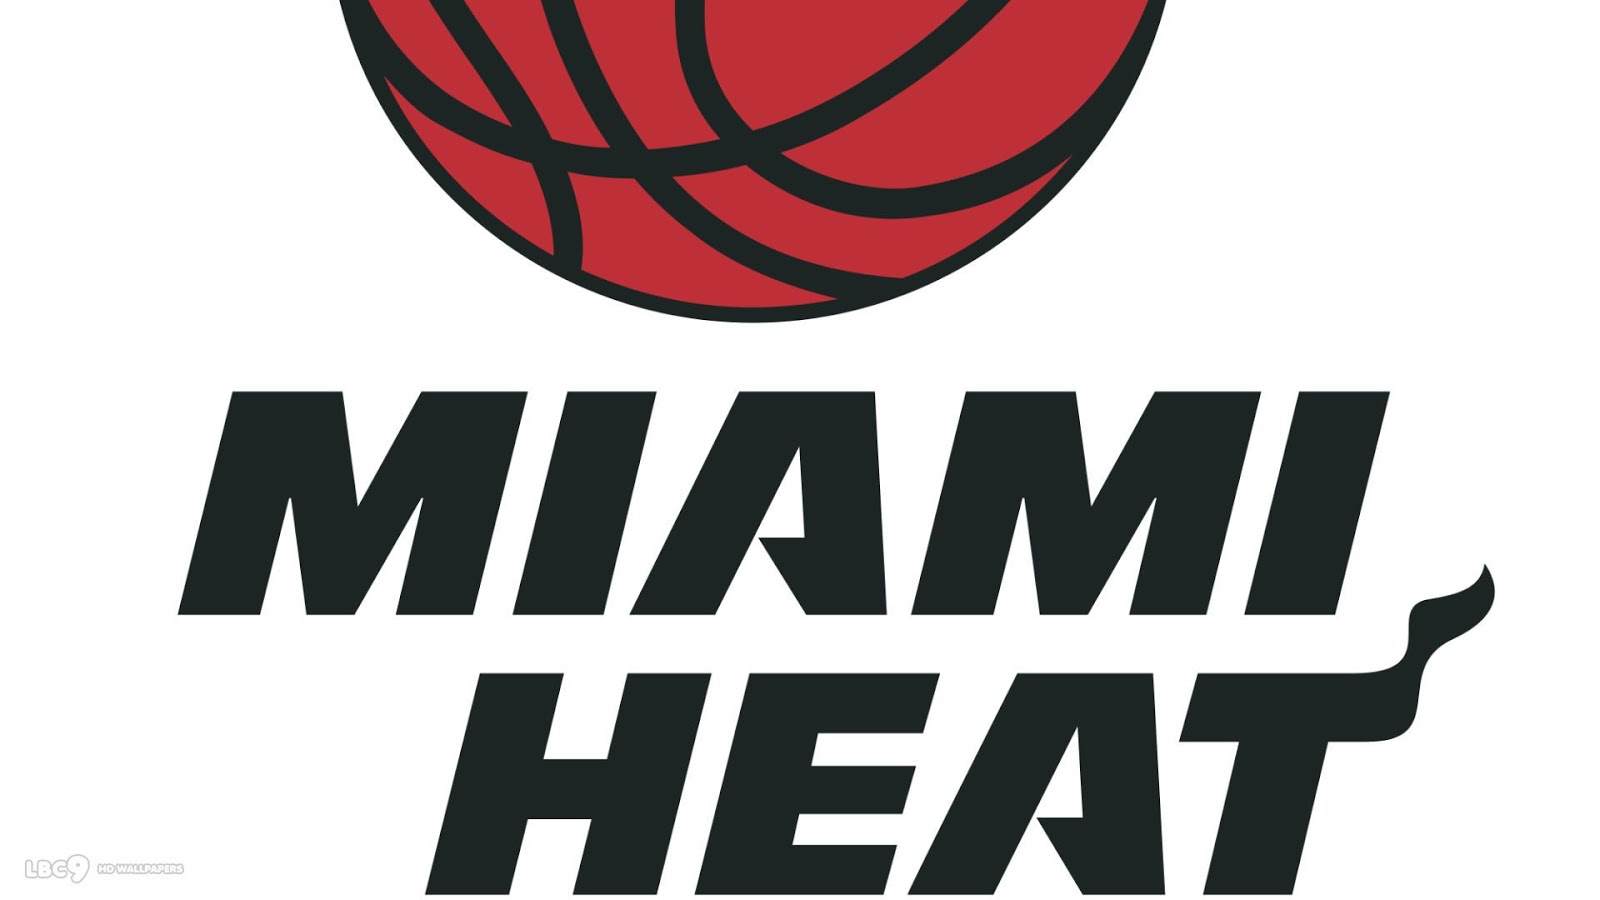 miami heat logo sites logo rh siteslogo blogspot com miami heat nba logo vector miami heat nba logo vector